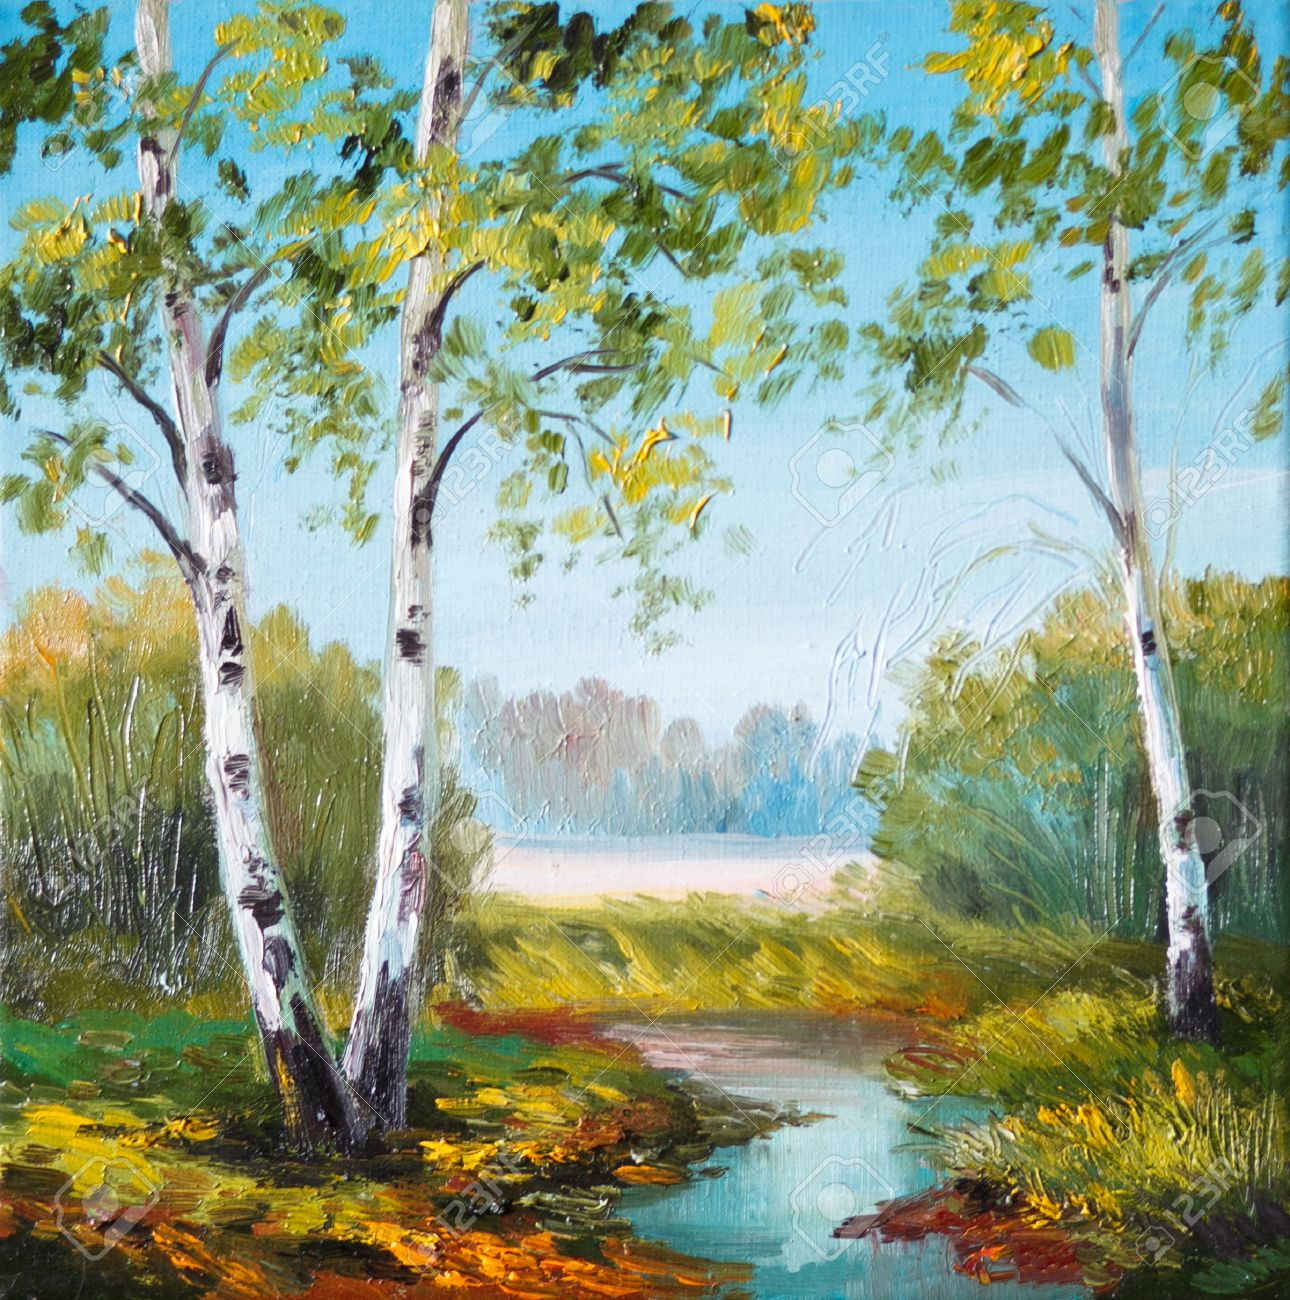 Oil Painting Birch In The Field Near The River Outdoor Wallpaper Stock Photo Picture And Royalty Free Image Image 35891402